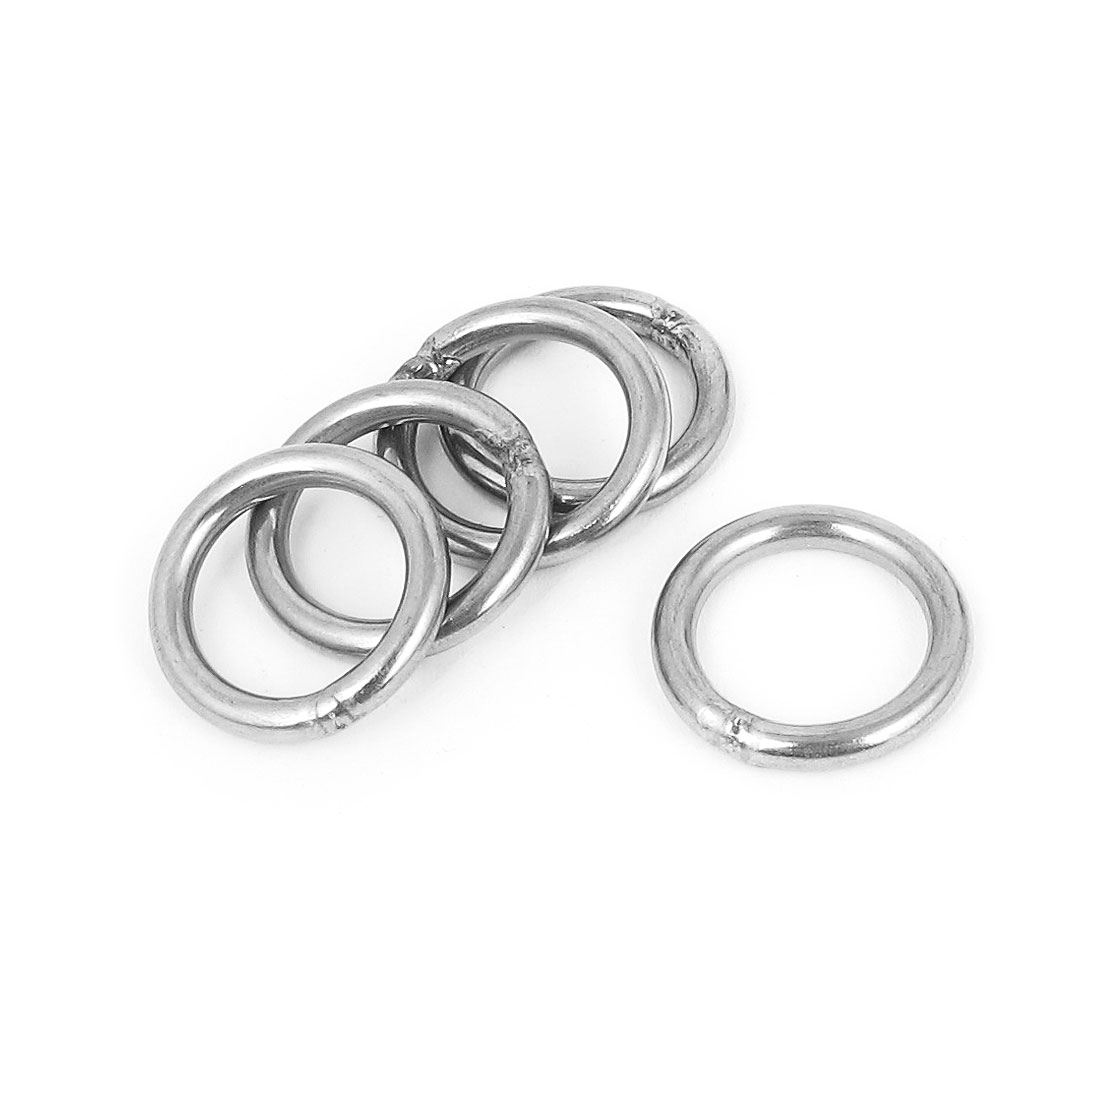 3mmx20mm Stainless Steel Welded O Ring 5pcs for Bags Key Chains Key Rings